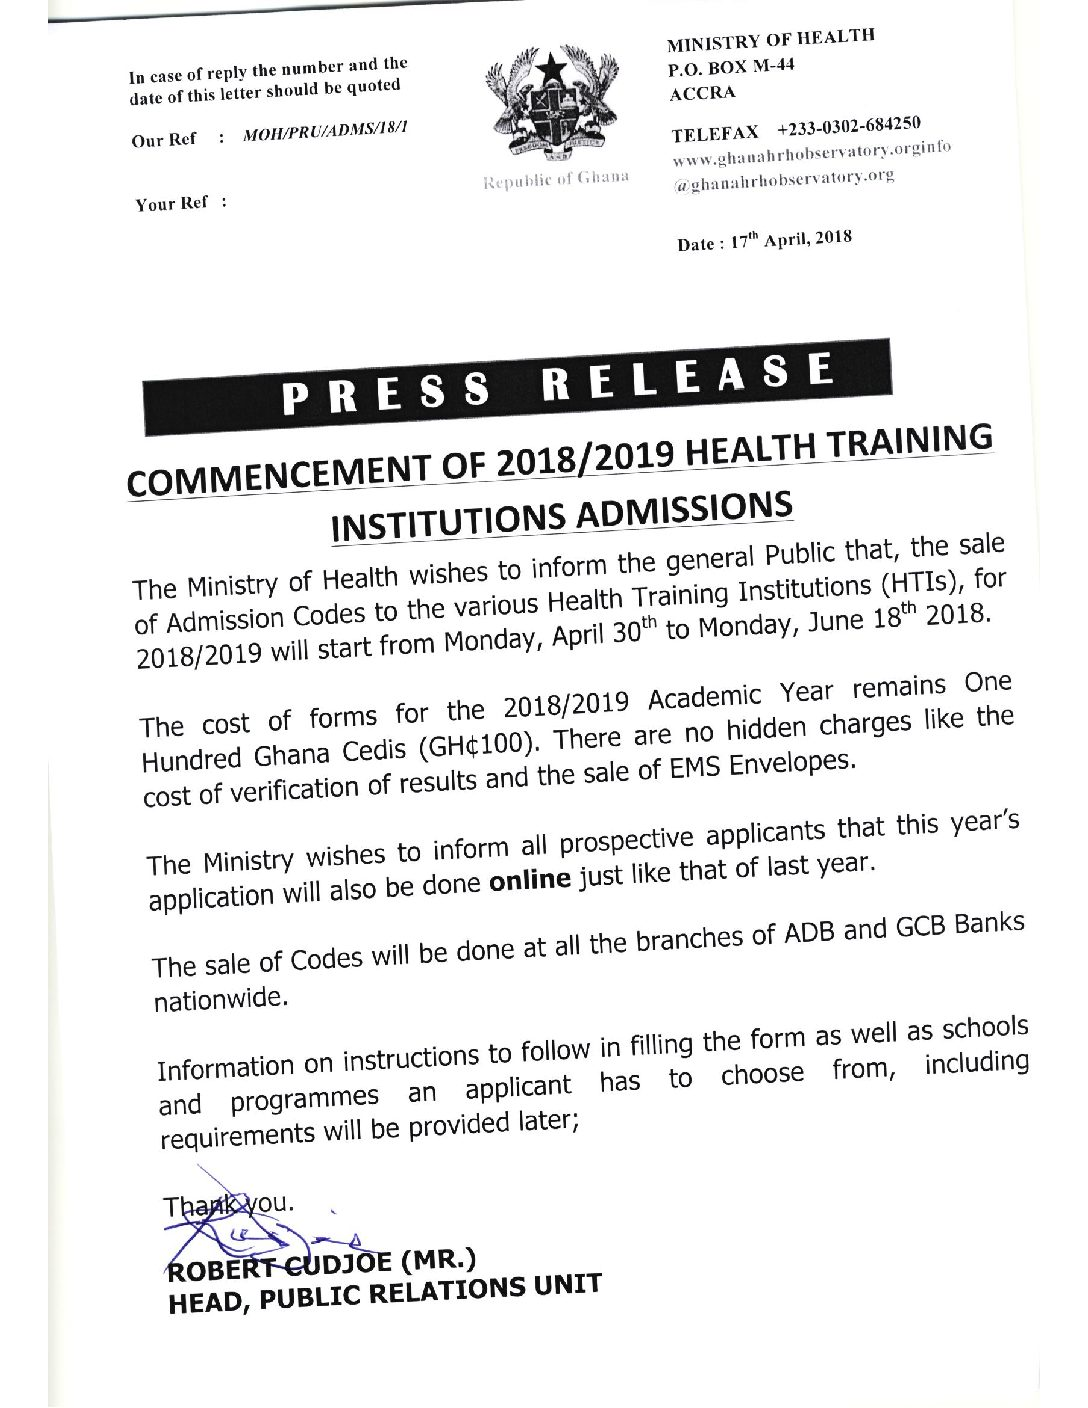 Commencement of 2018/2019 Health Training Institutions Admissions